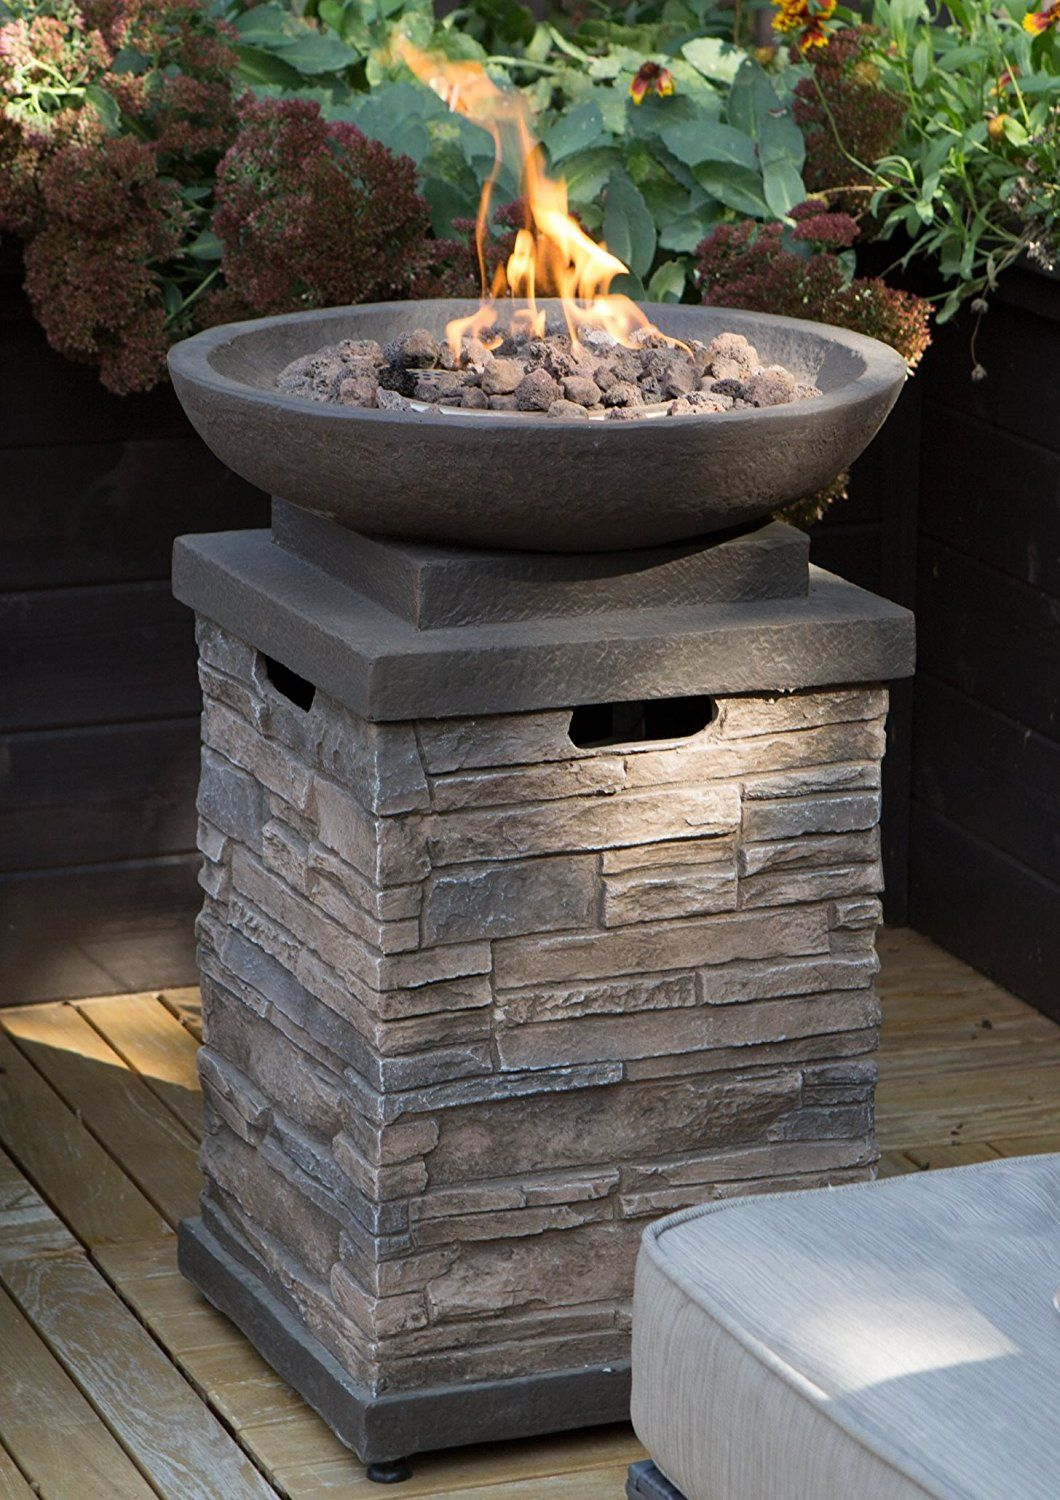 Realistic Stone Like Outdoor Patio Fire Pit Bowl With Free Cover